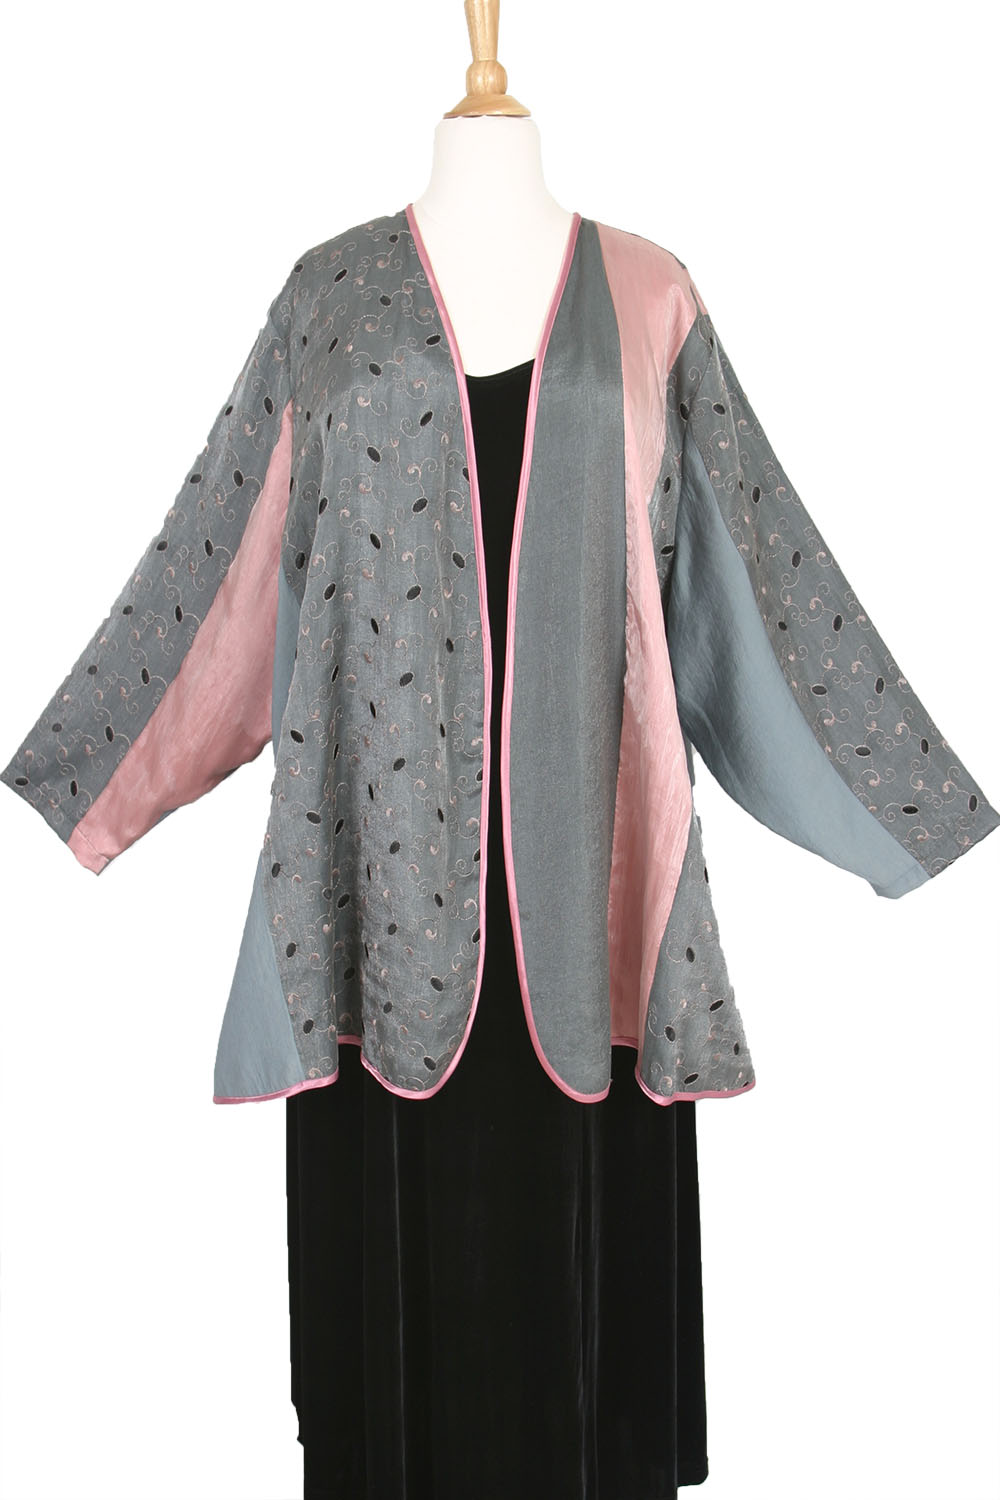 Plus Size Mother Bride Pink Gray Black Jacket Sizes 26/28, 30/32